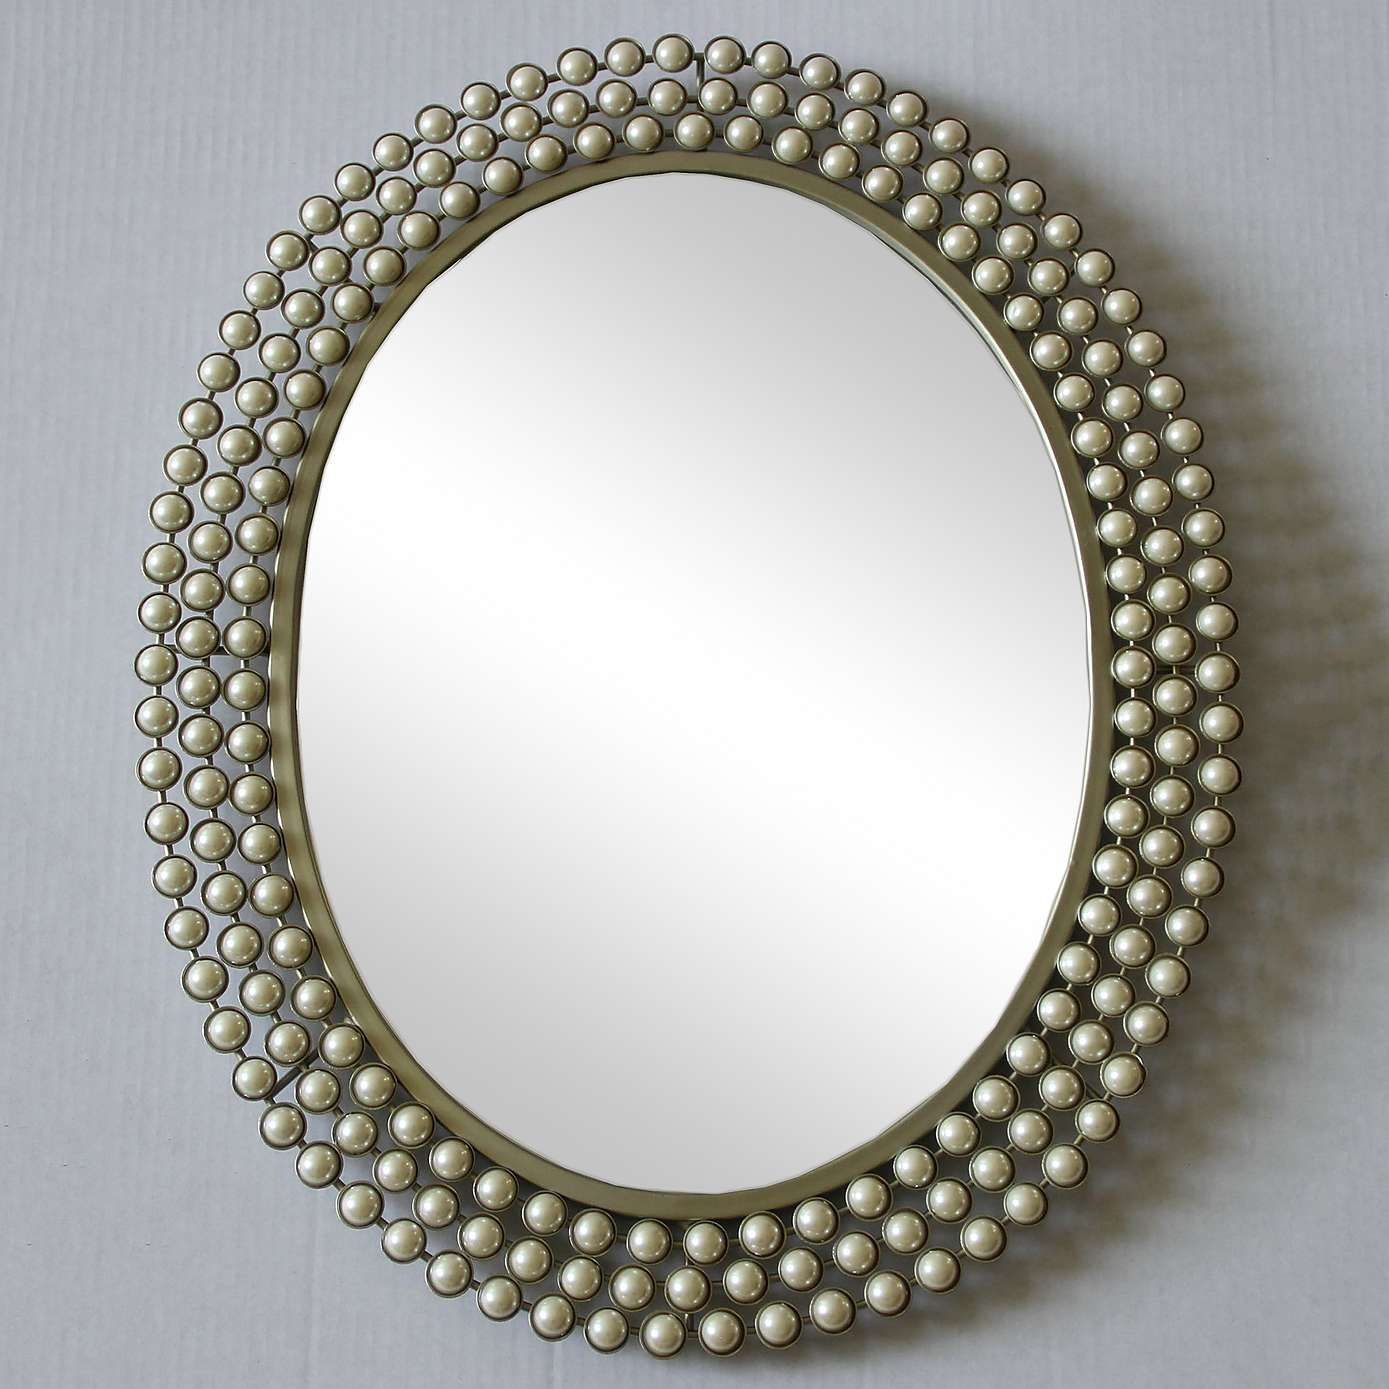 Dunelm Bathroom Accessories Cream Pearl Effect Wall Mirror Dunelm Home Accesories